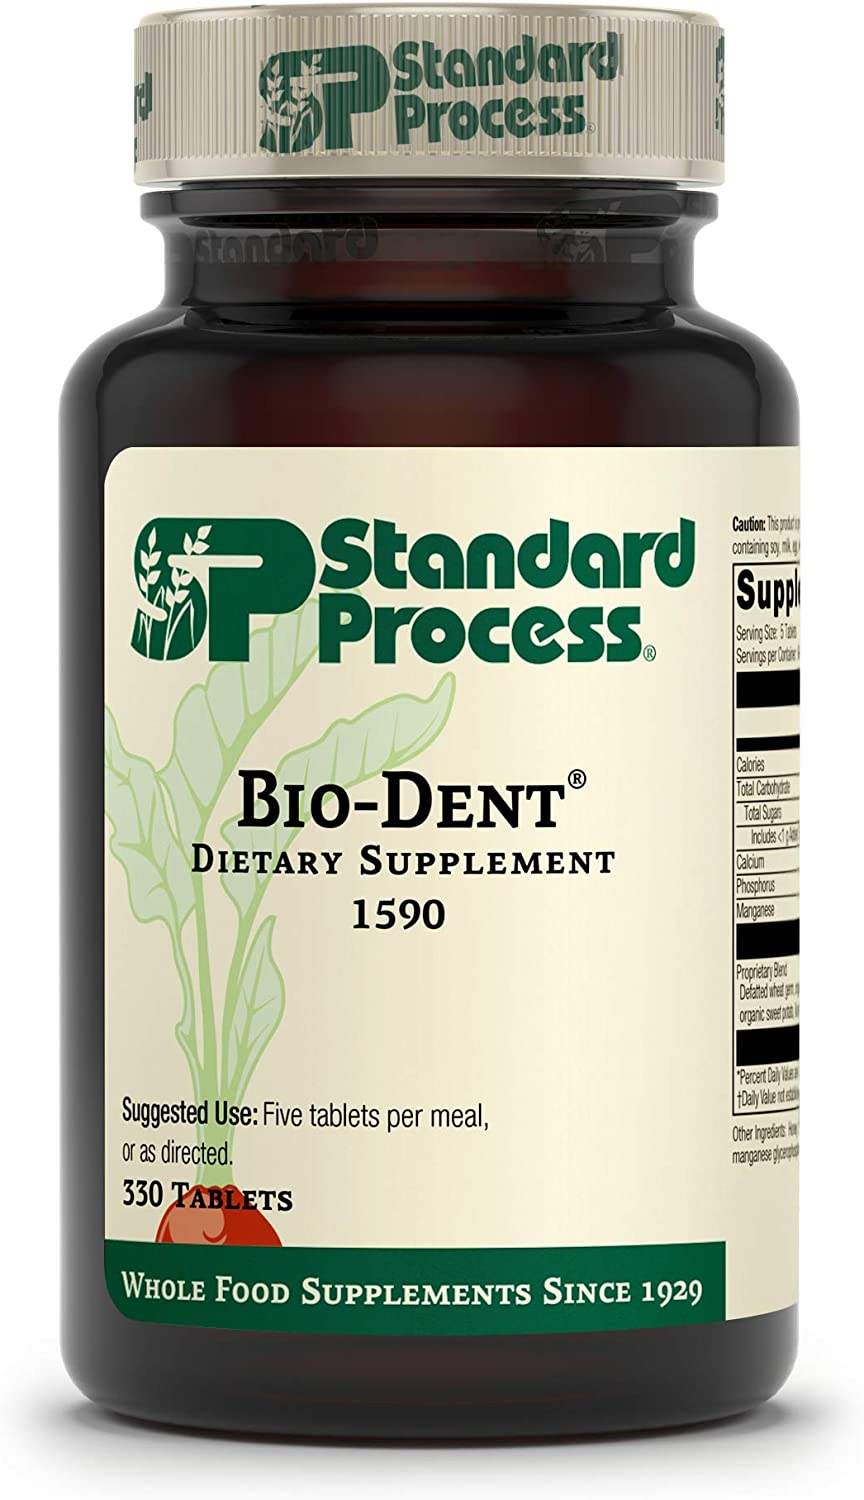 Standard Process Bio-Dent - Whole Food Supplement for Skin, Muscle, and Bone Health - Calcium, Licorice Root, Manganese, Phosphorus, and More - 330 Tablets